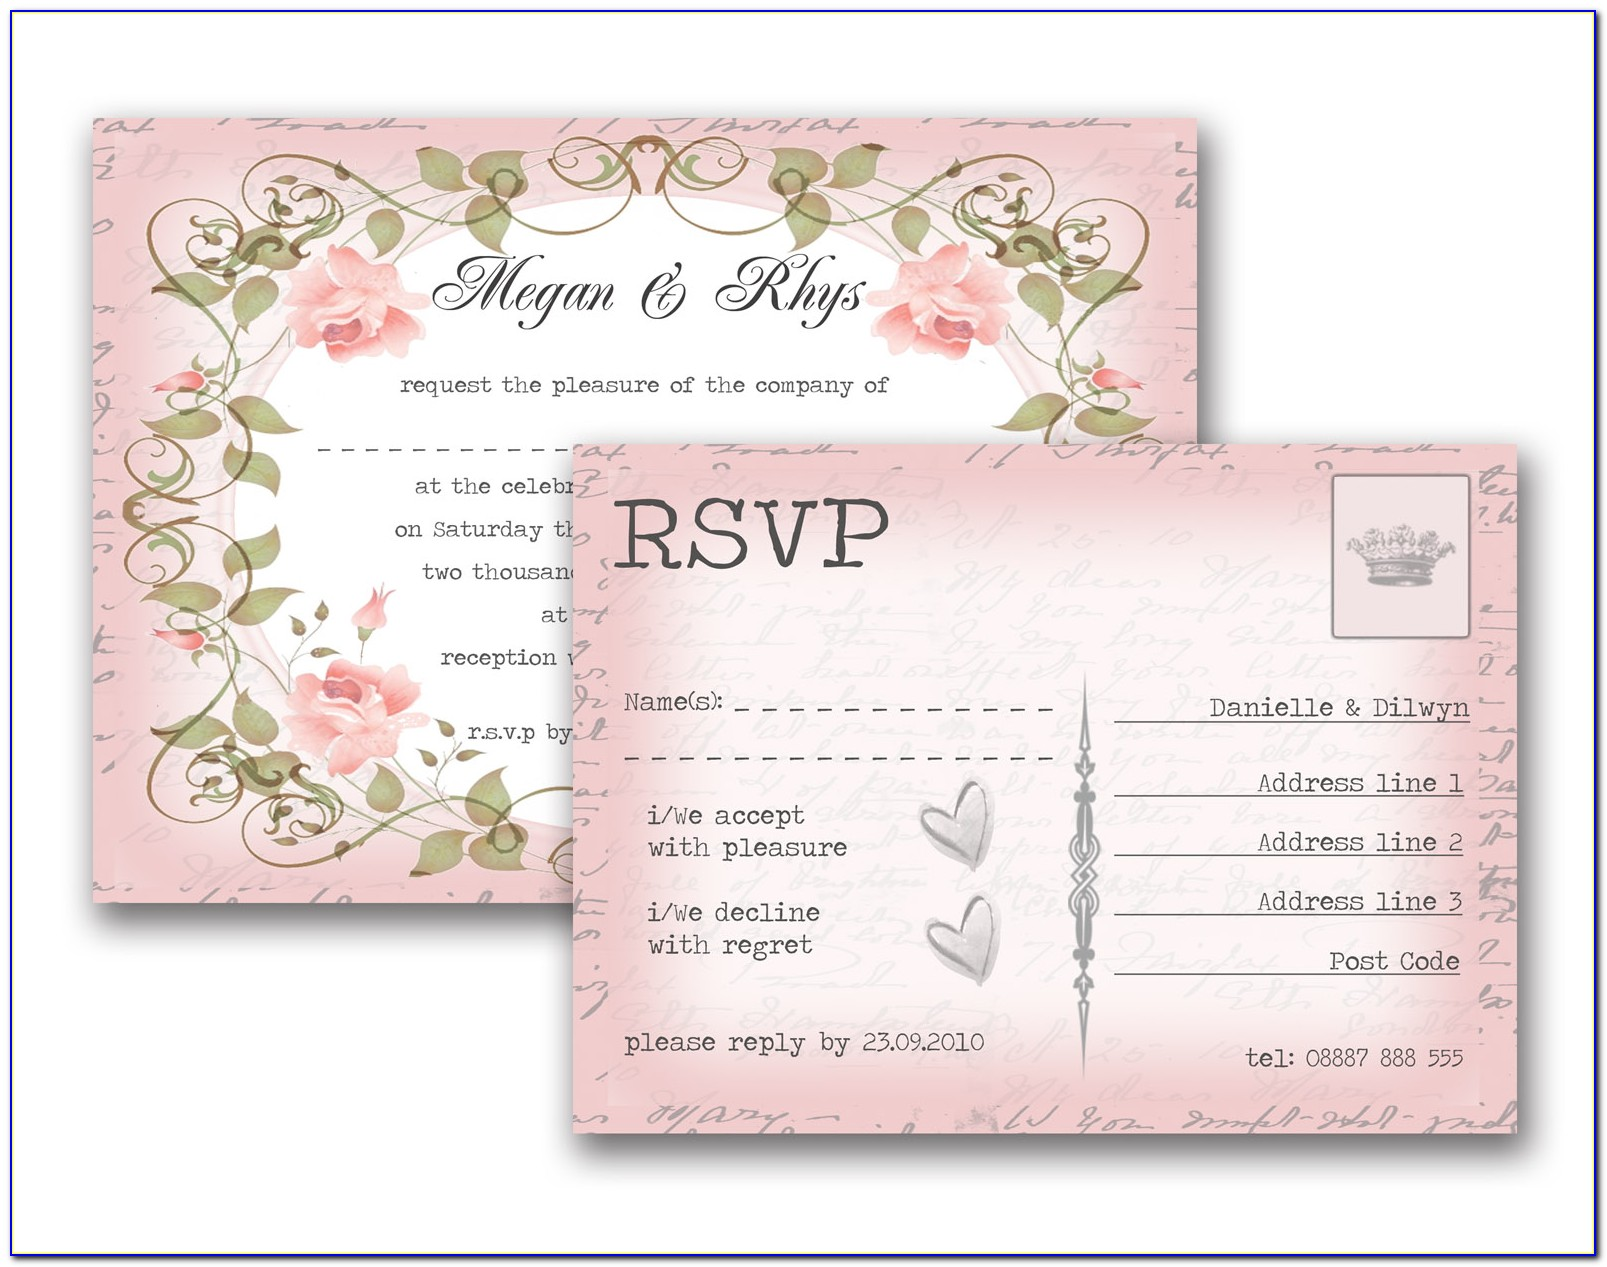 Full Form Of Rsvp In Indian Wedding Cards